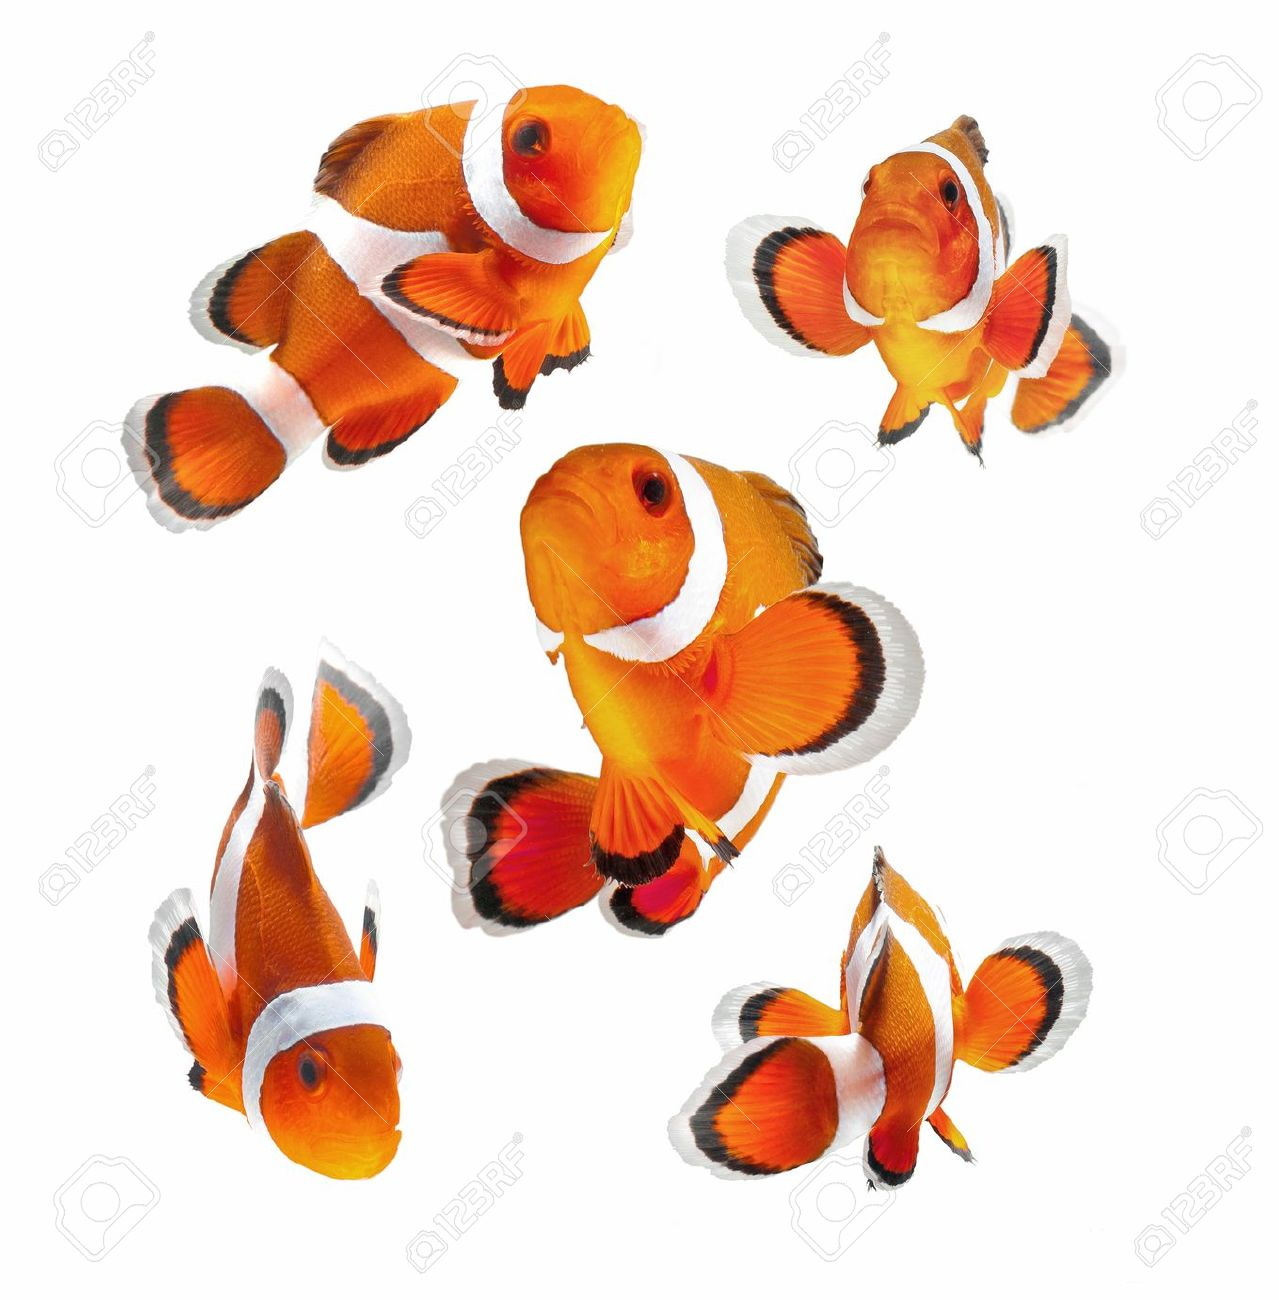 reef fish , clown fish or anemone fish isolated on white background Stock Photo - 13337968